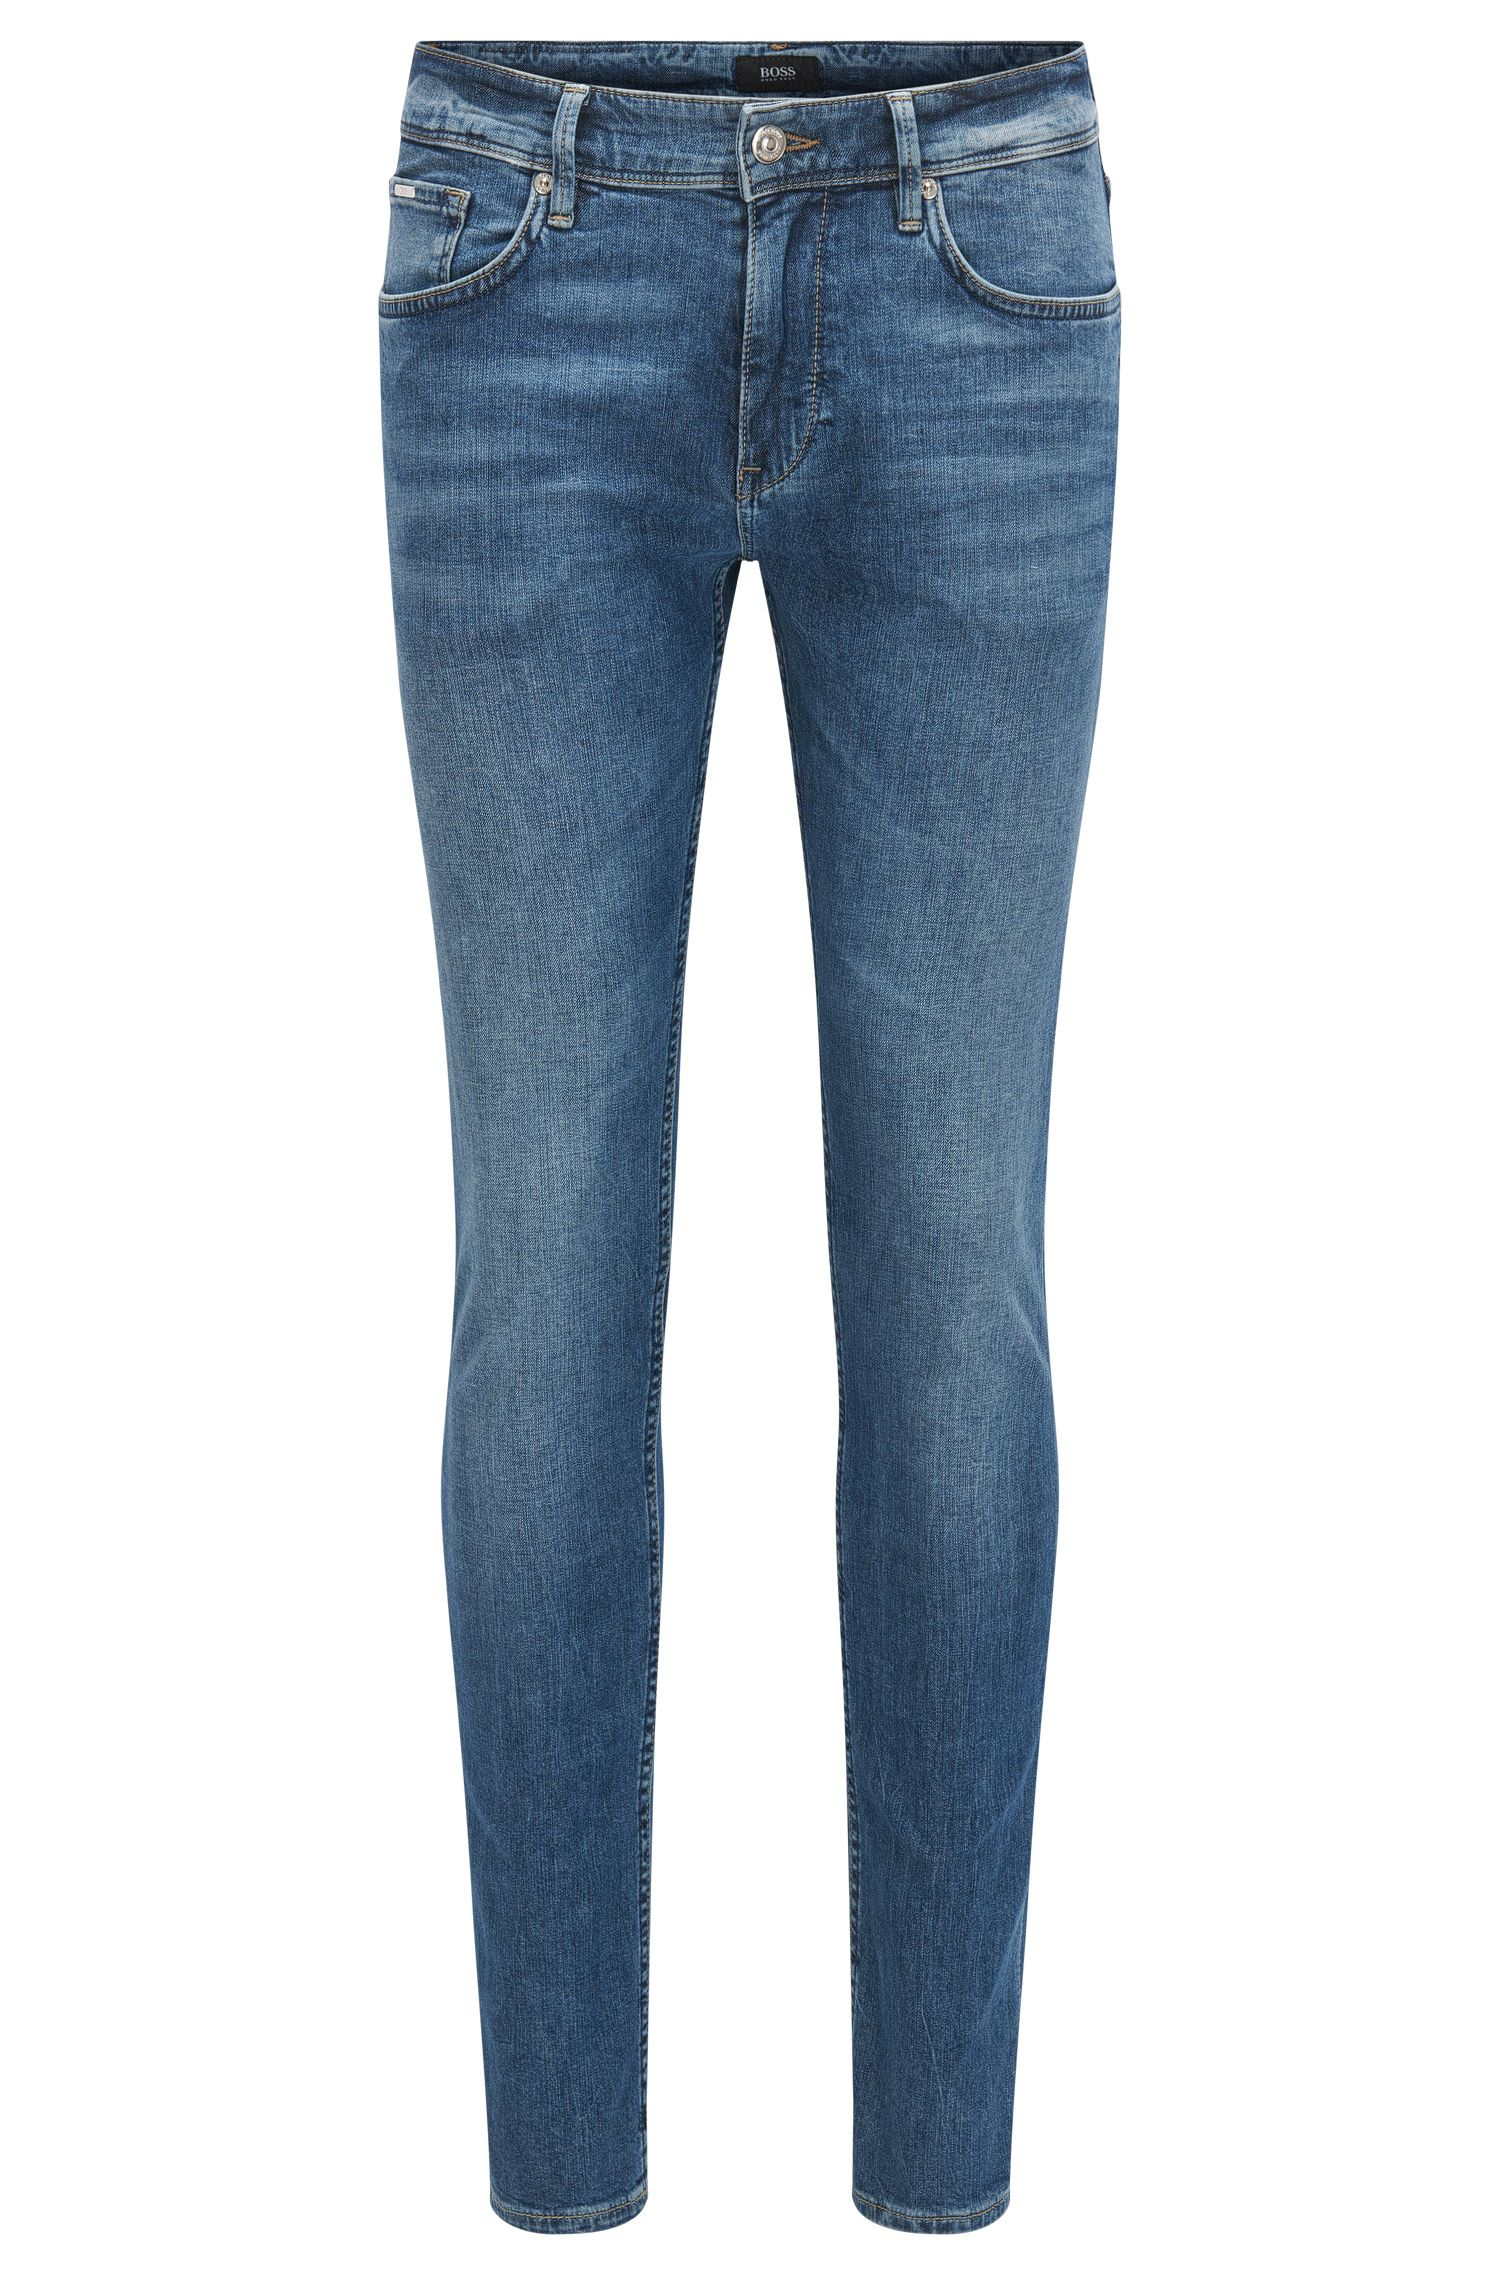 'Charleston' | Extra Slim Fit, 9 oz Stretch Cotton Jeans